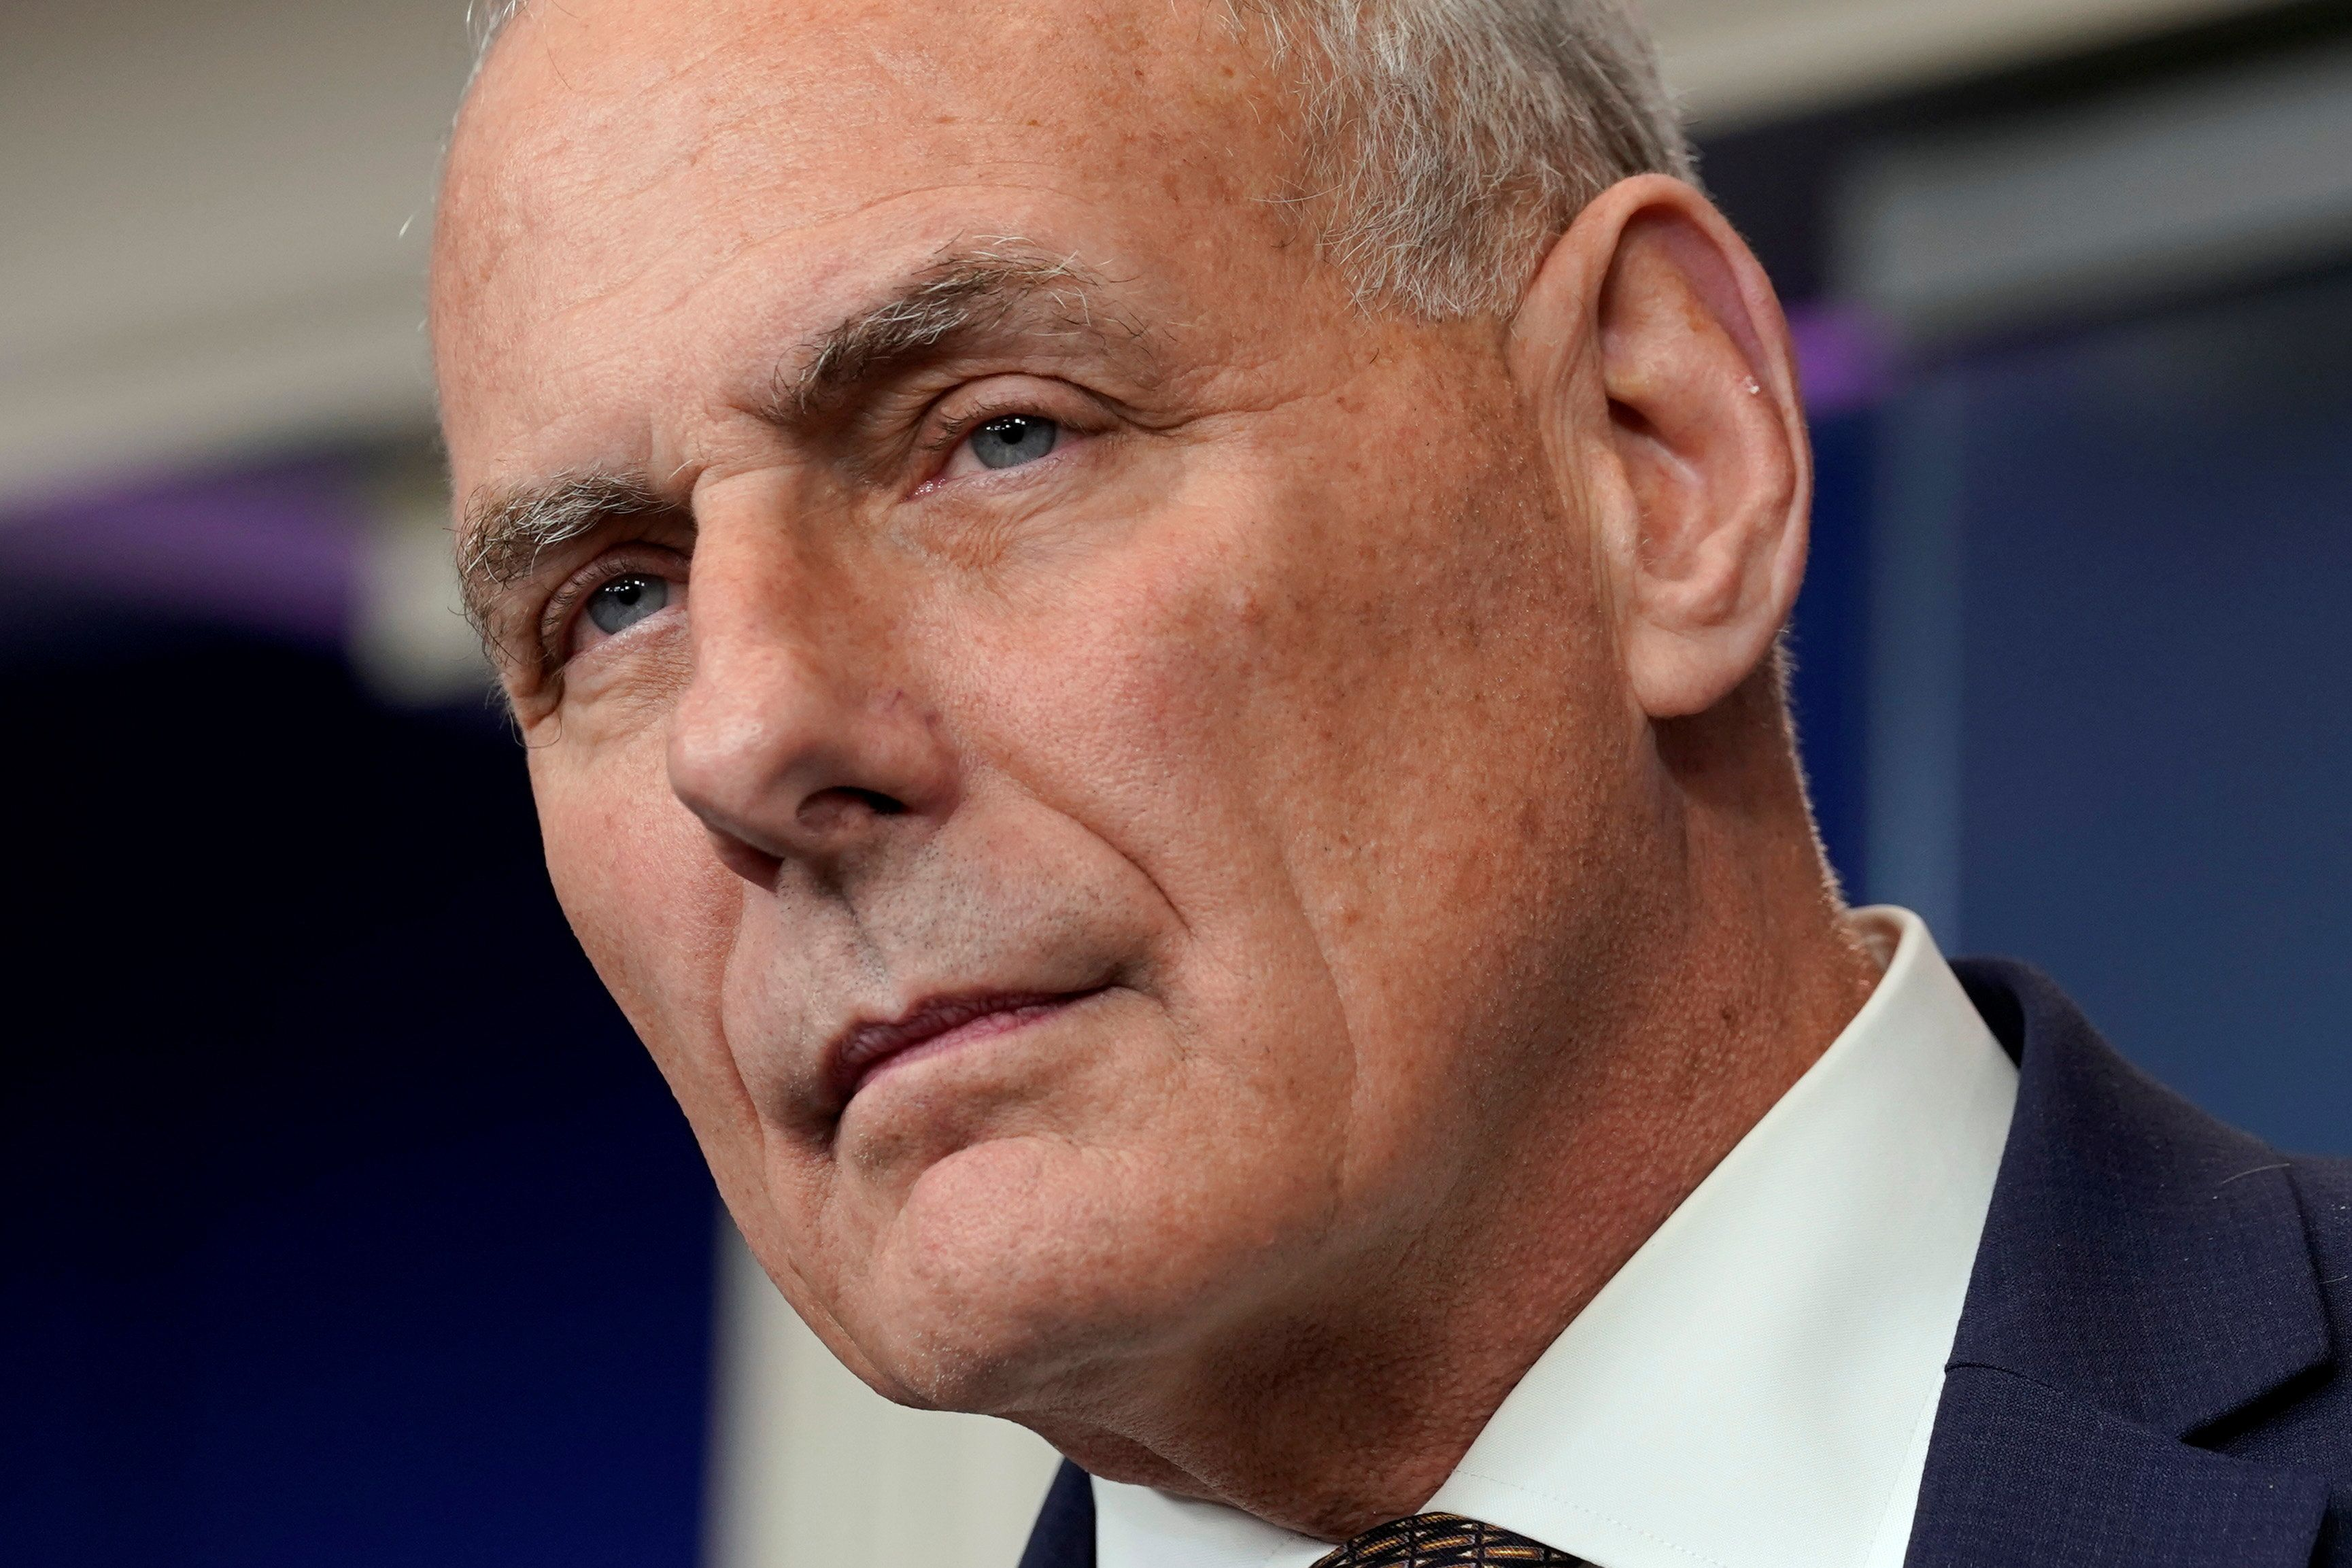 White House Chief of Staff John Kelly listens to questions during the daily briefing at the White House in Washington, U.S., October 12, 2017. REUTERS/Yuri Gripas